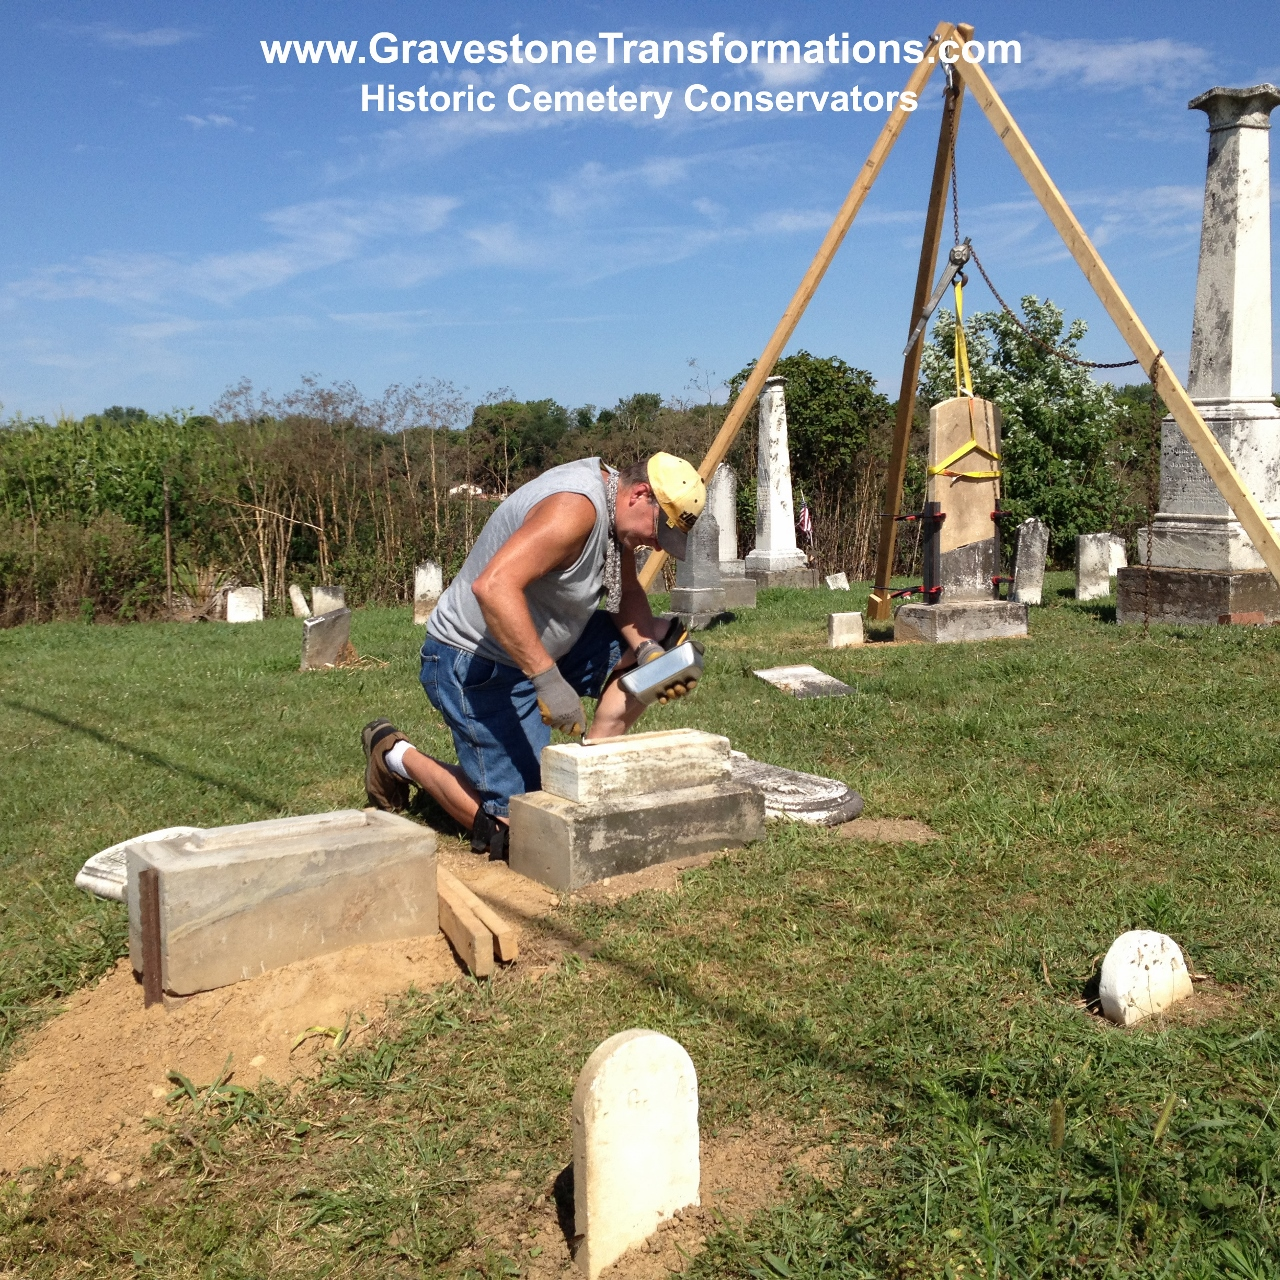 Gravestone Transformations - Historic Cemetery Conservators - Headstone Repair, Gravestone Cleaning, Monument Resetting, Cemetery Conservation and Preservation